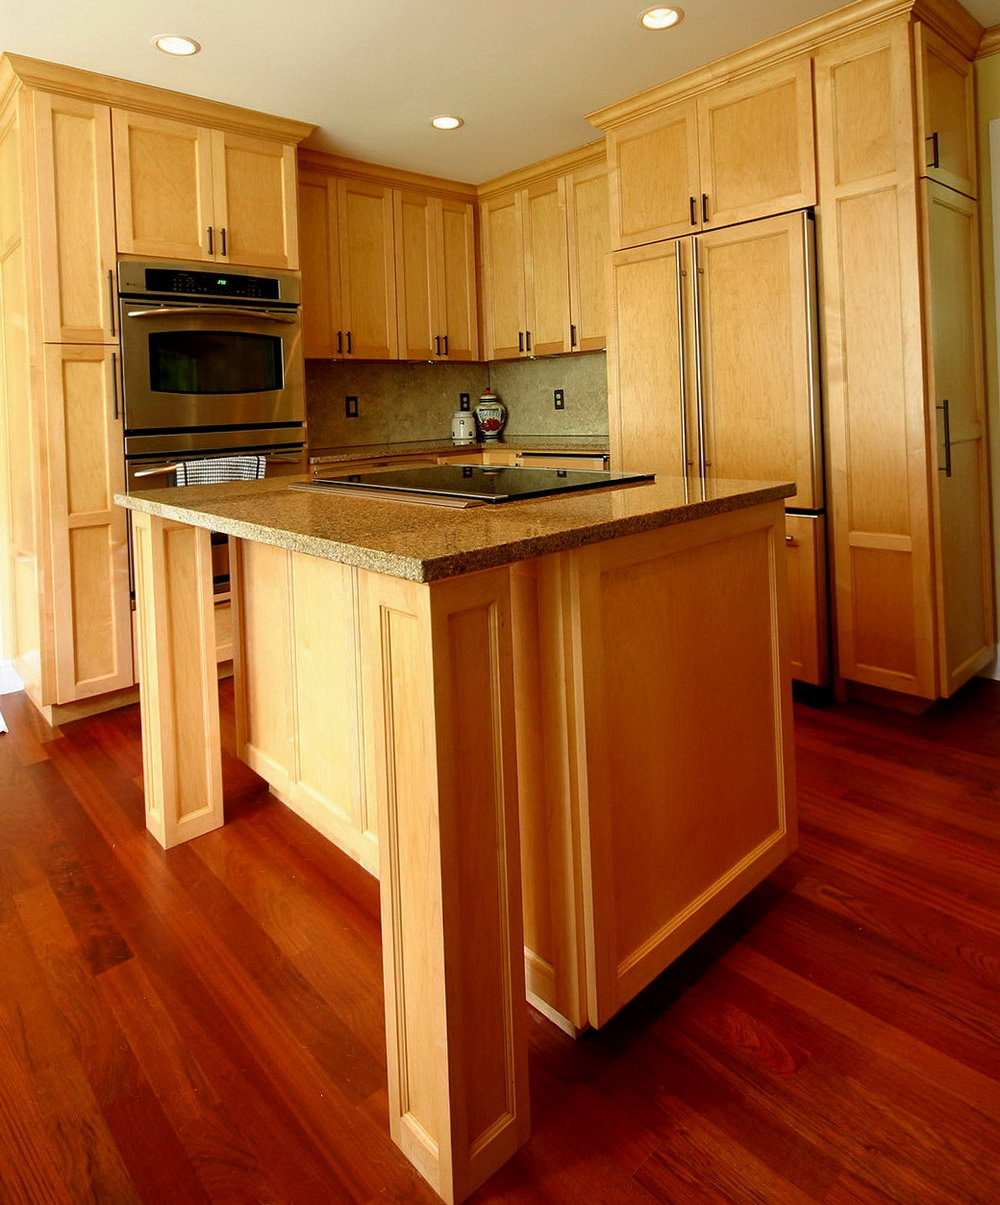 Kitchens With Wood Cabinets And Wood Floors